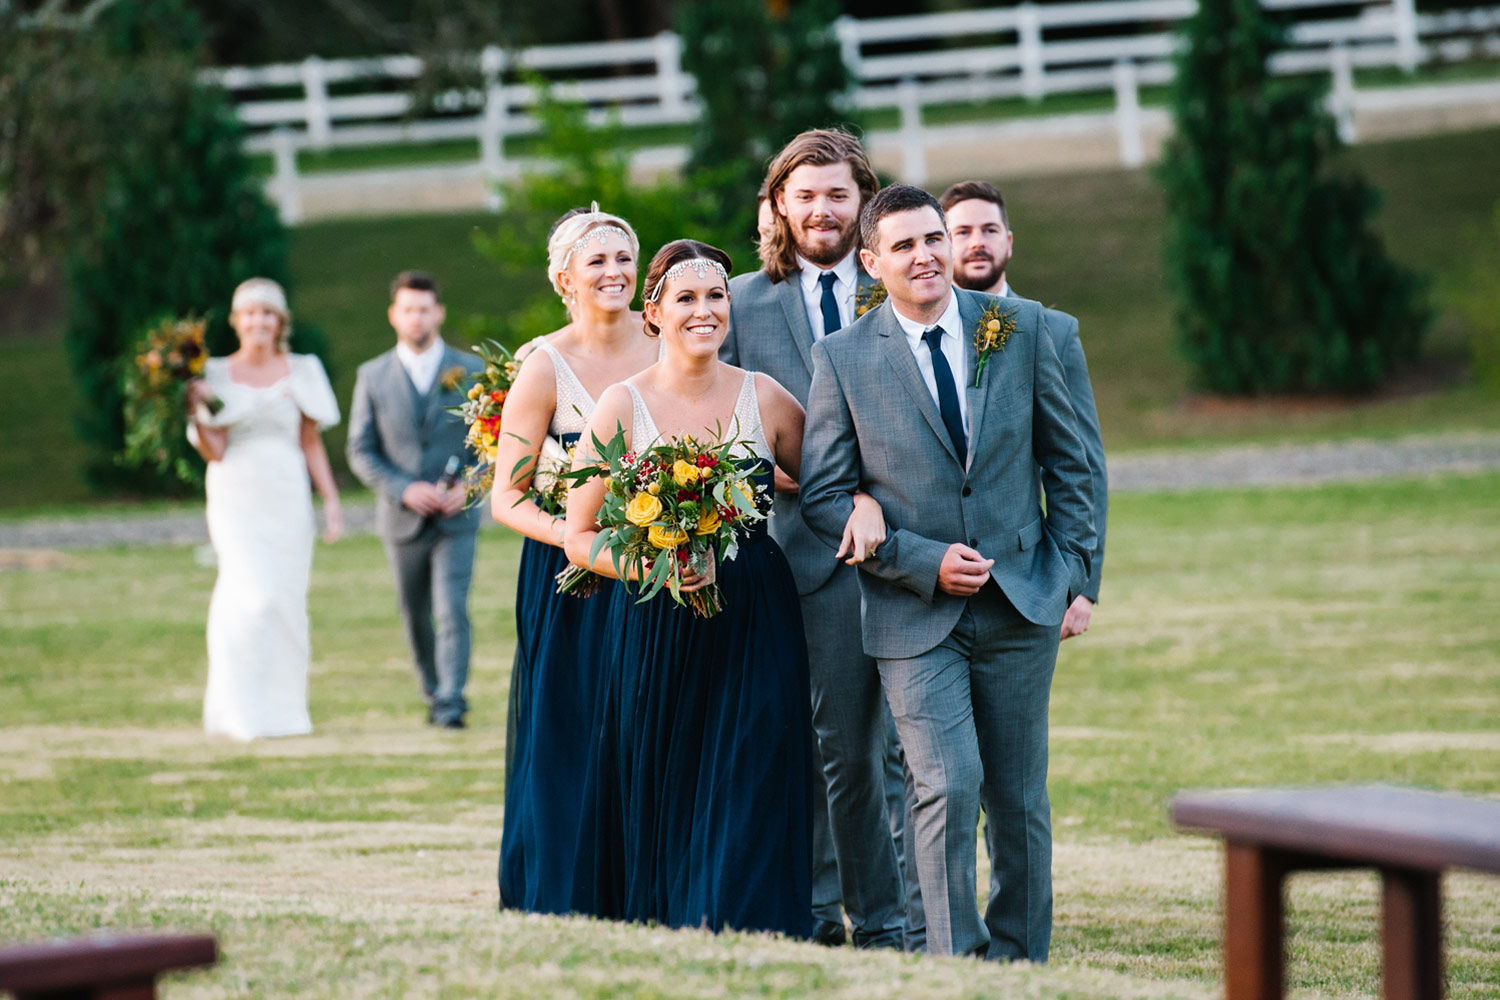 Wedding-Photographer-Hunter-Valley-KM63.jpg